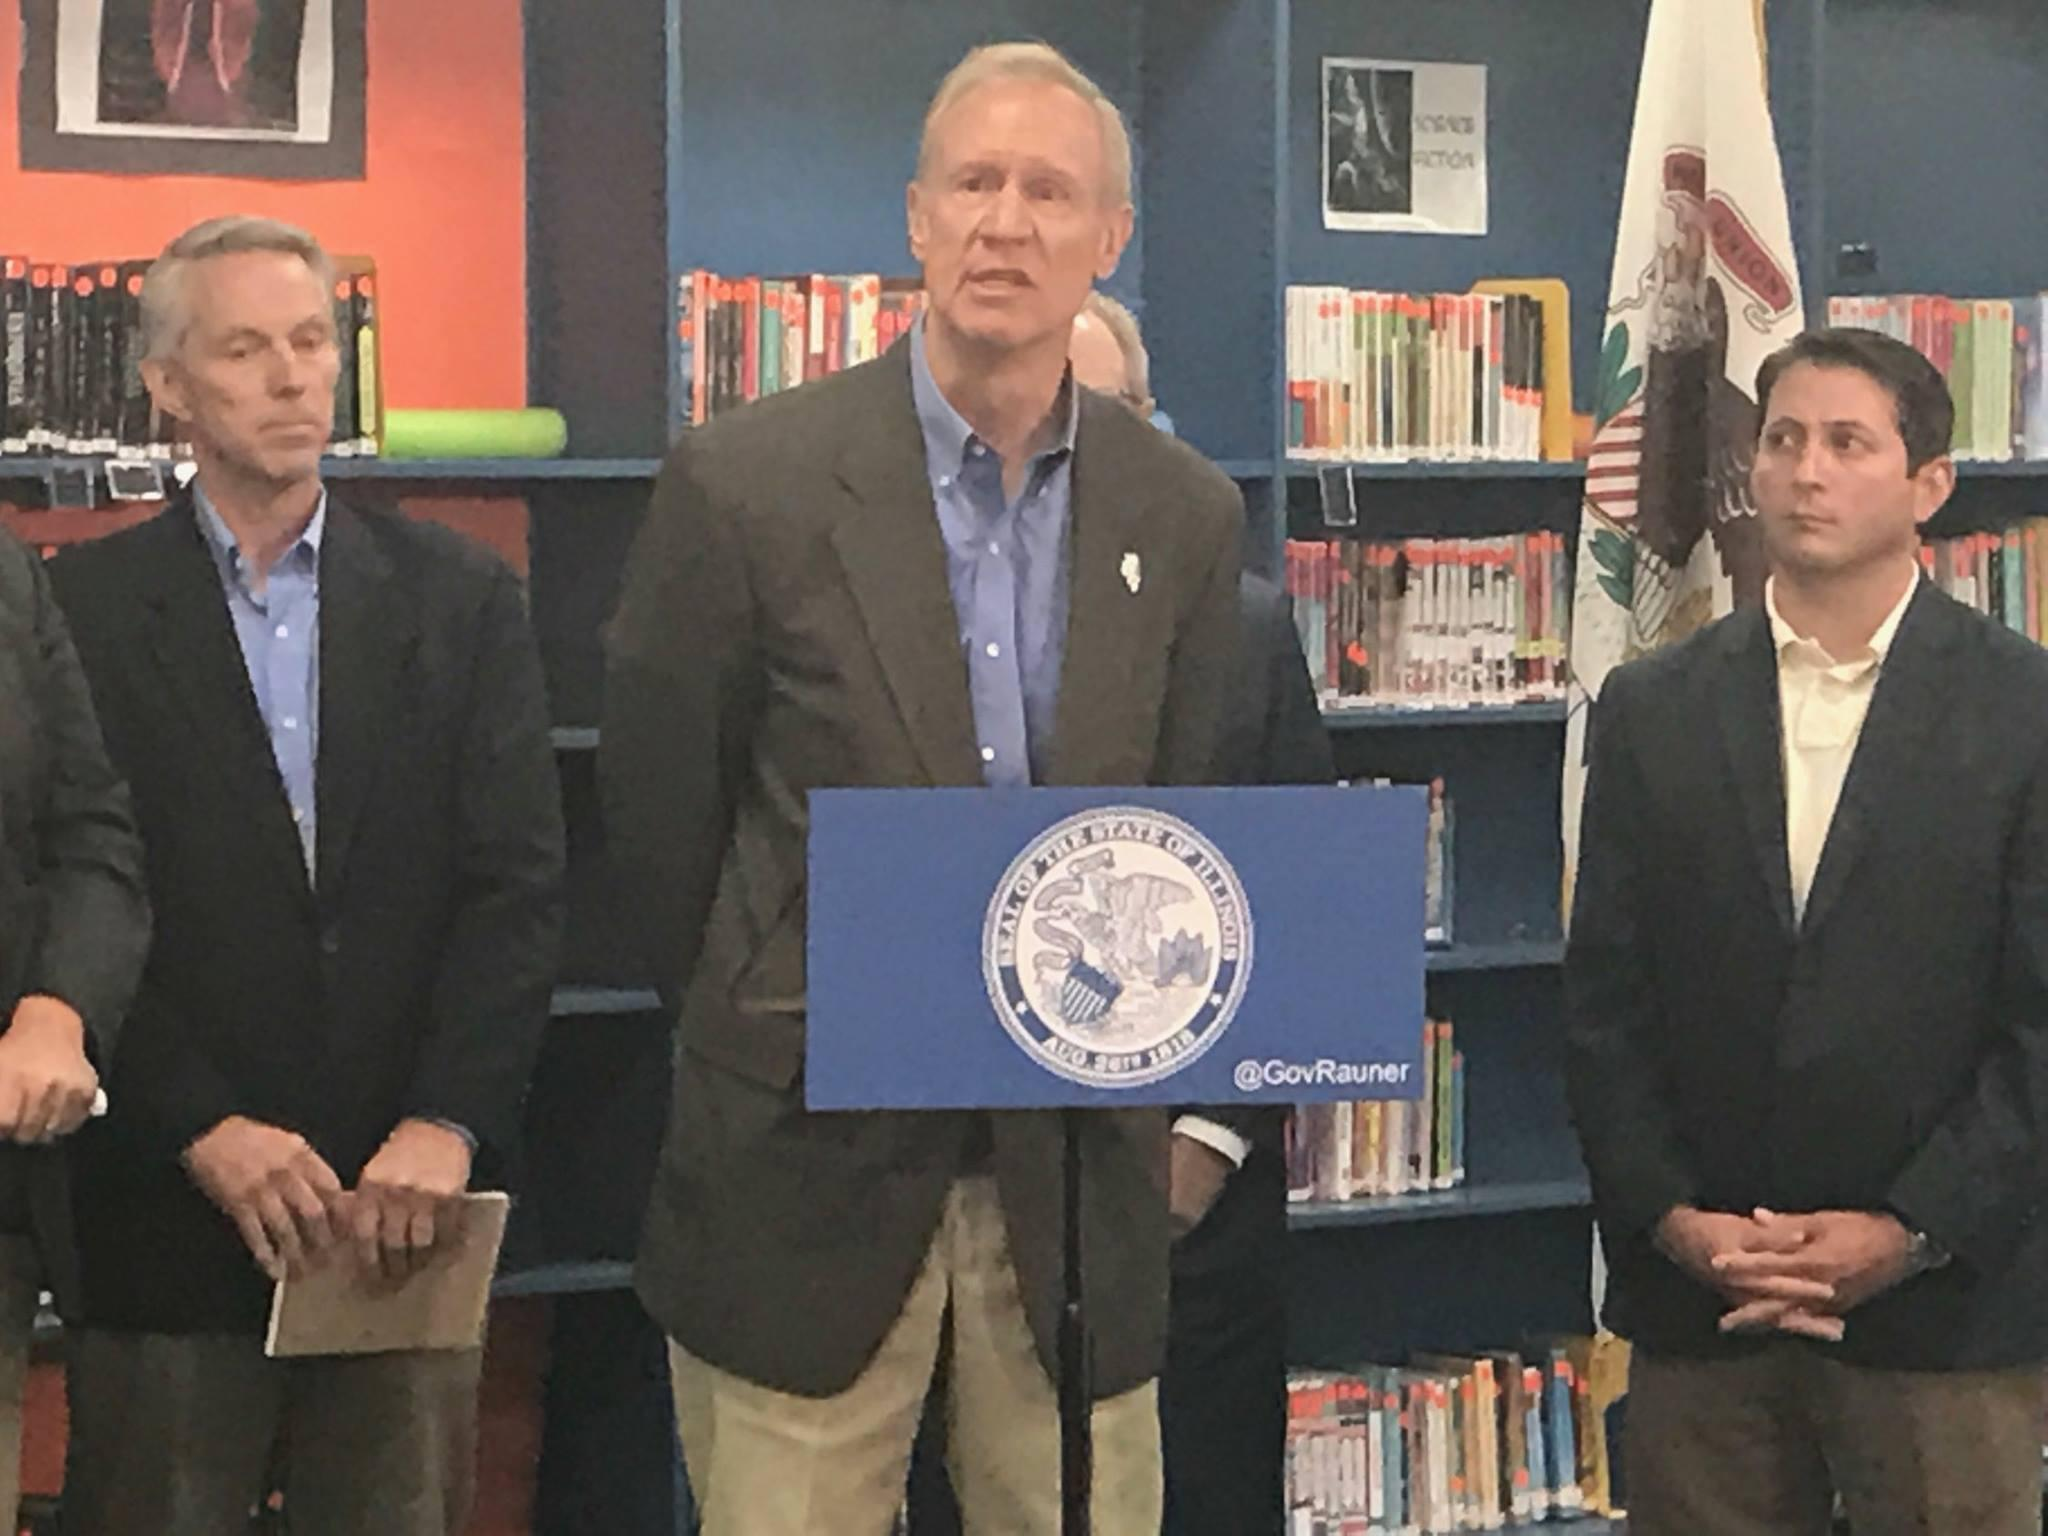 Rauner says he`ll veto money for Chicago teacher pensions